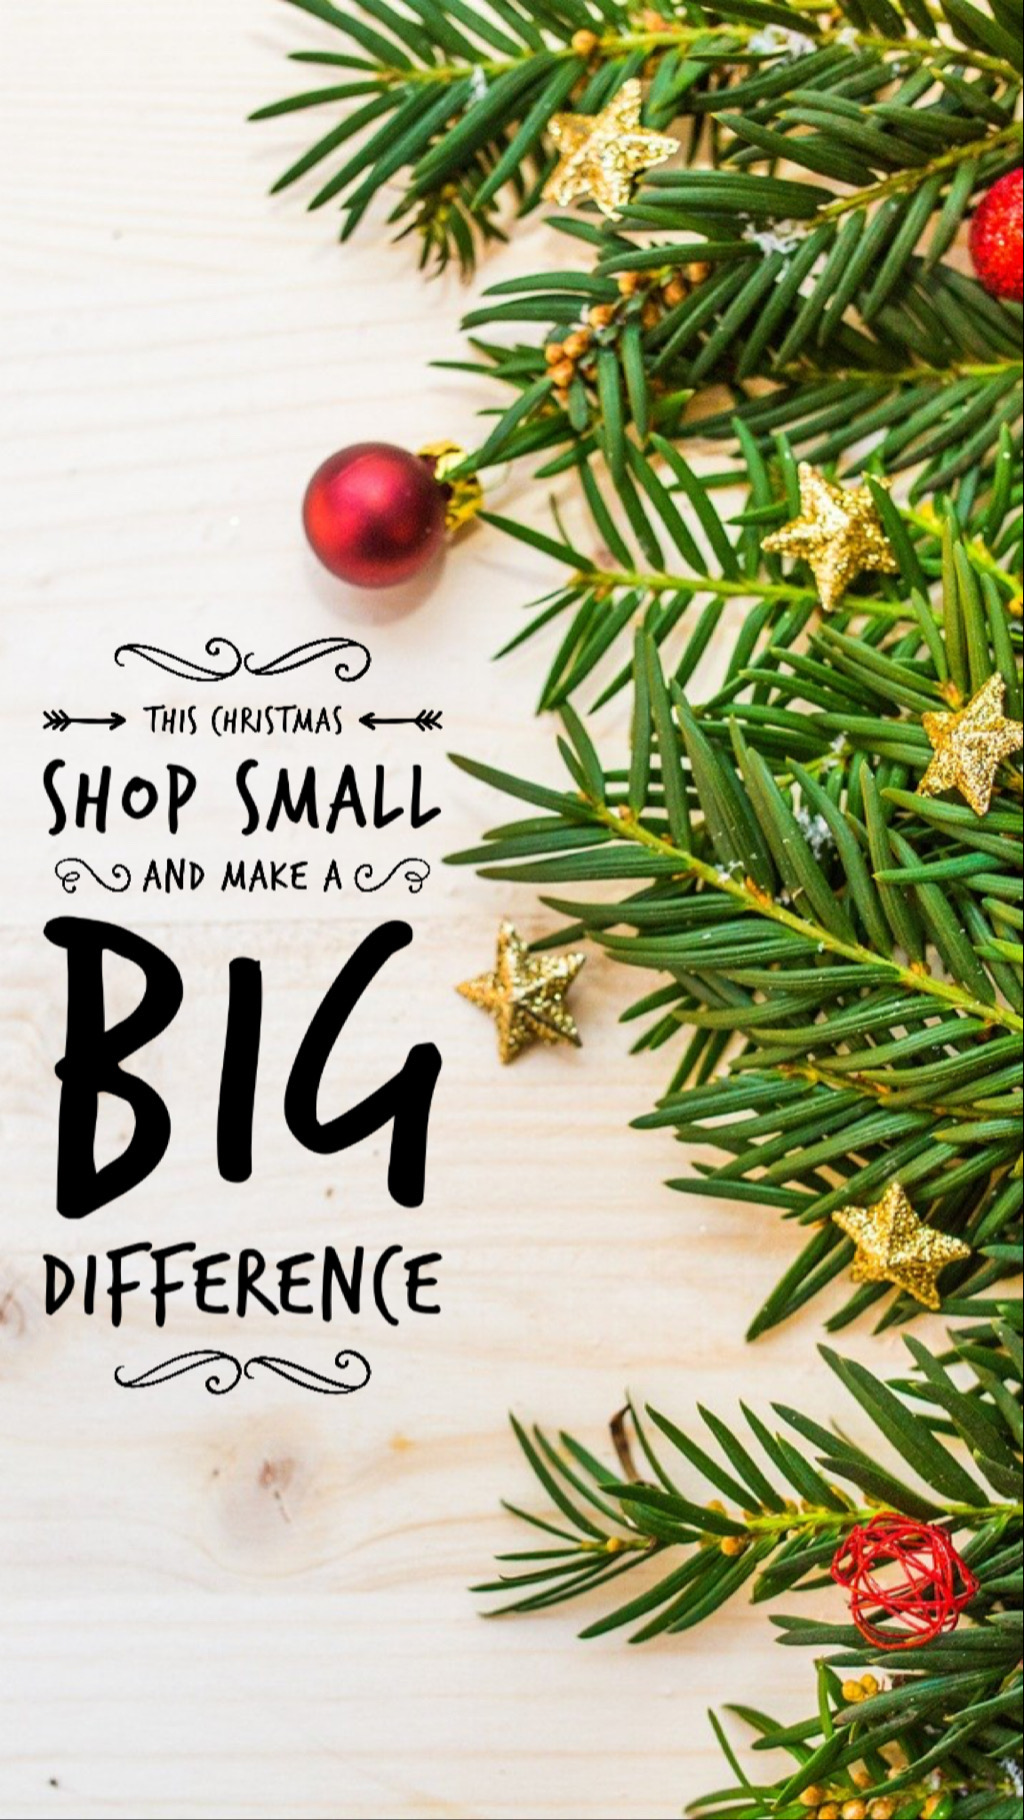 Small and Independent Businesses To Buy From This Christmas